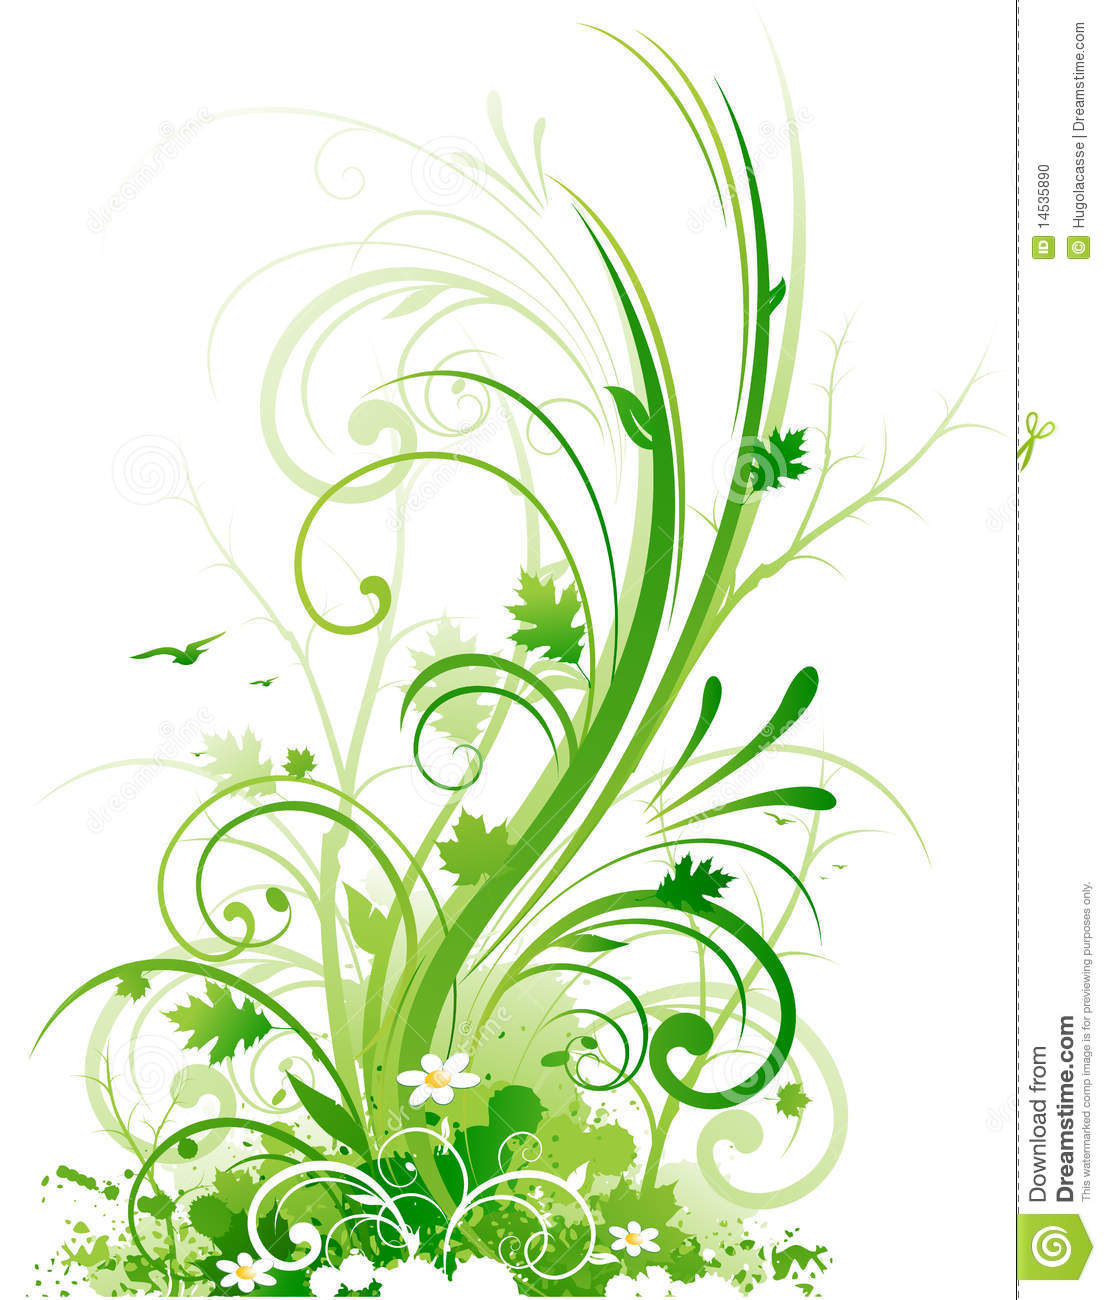 Nature design element stock photo image 14535890 - Photo image design ...